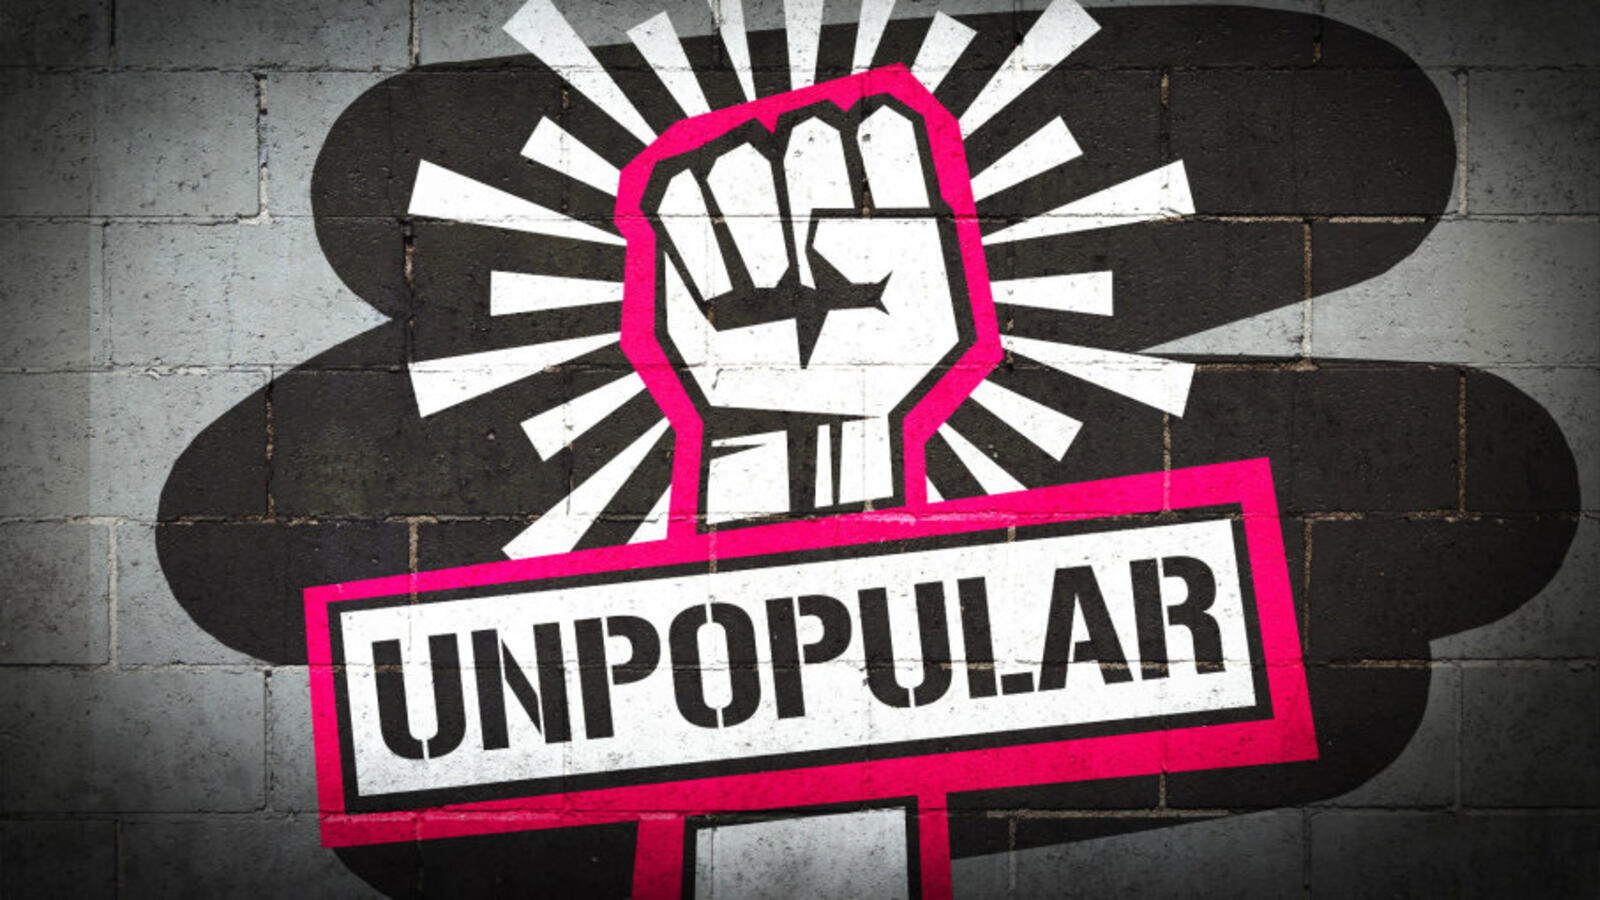 About Unpopular